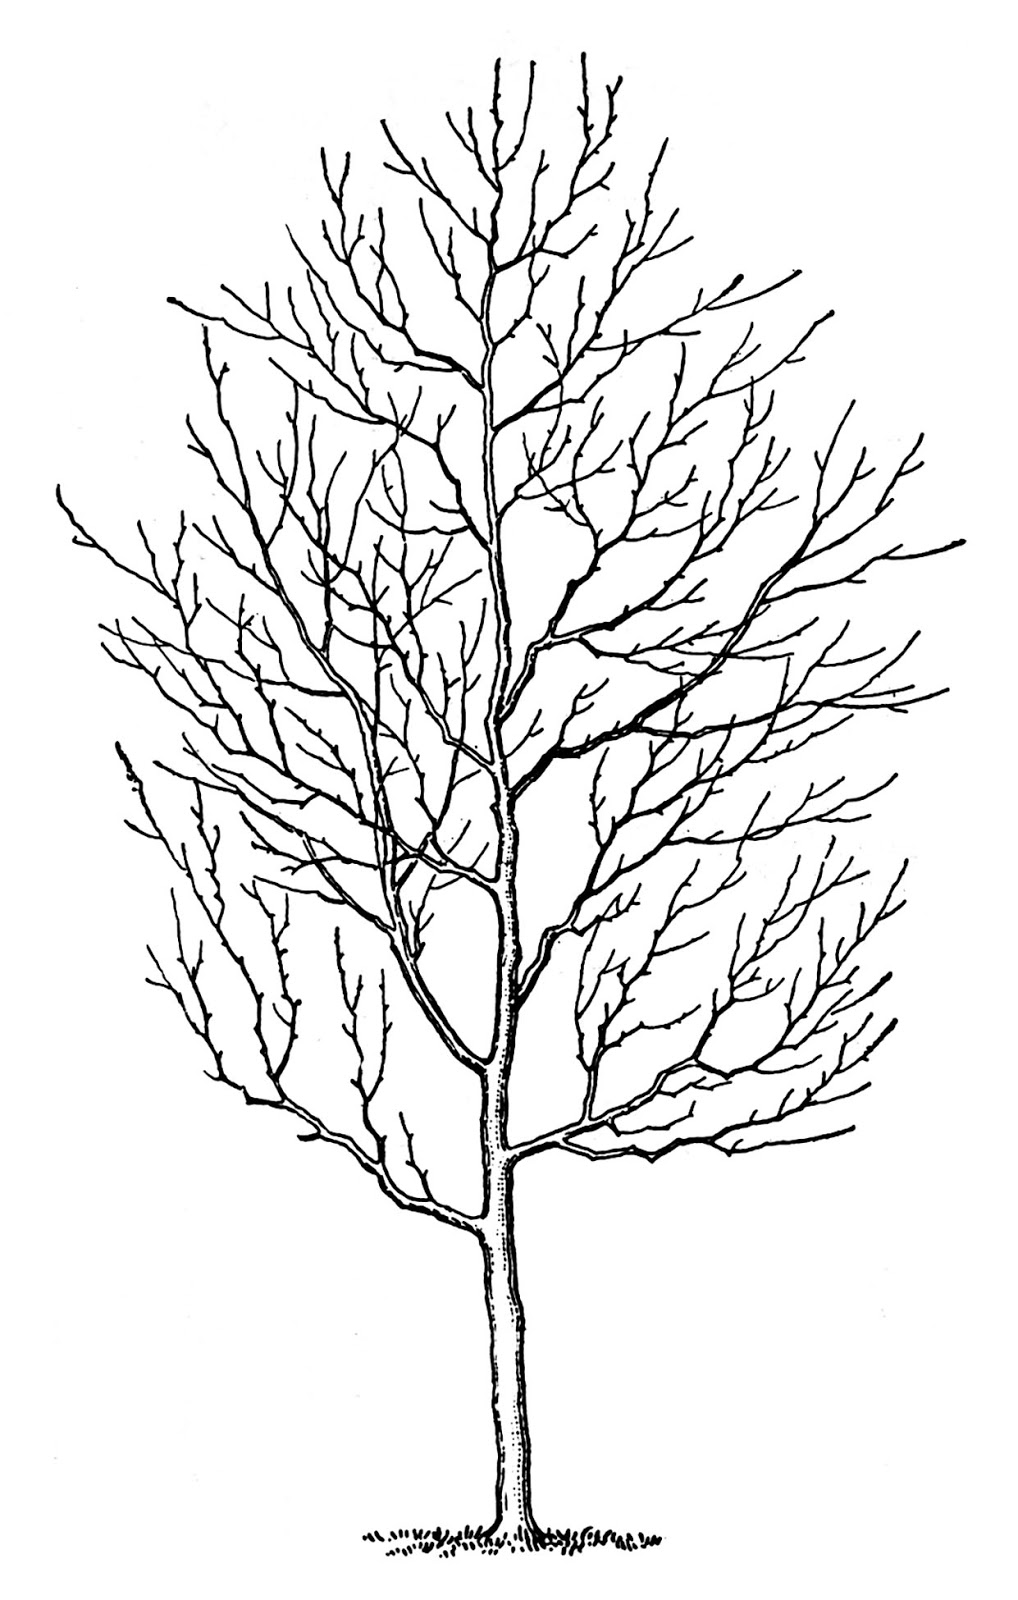 hight resolution of spooky tree image graphics fairy21 the graphics fairy